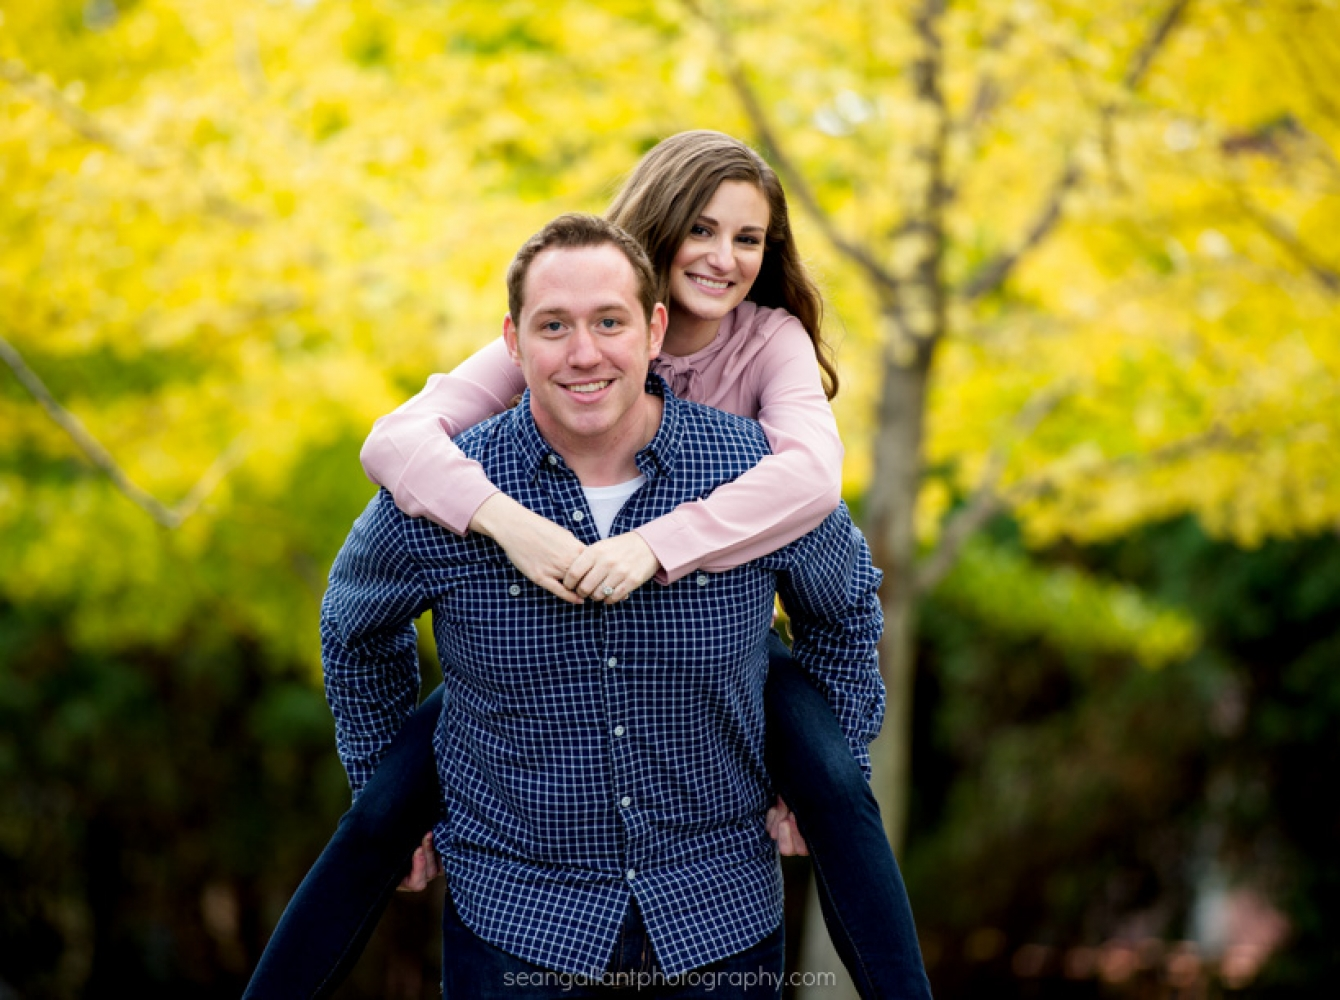 Rachel & James' Engagement Pictures